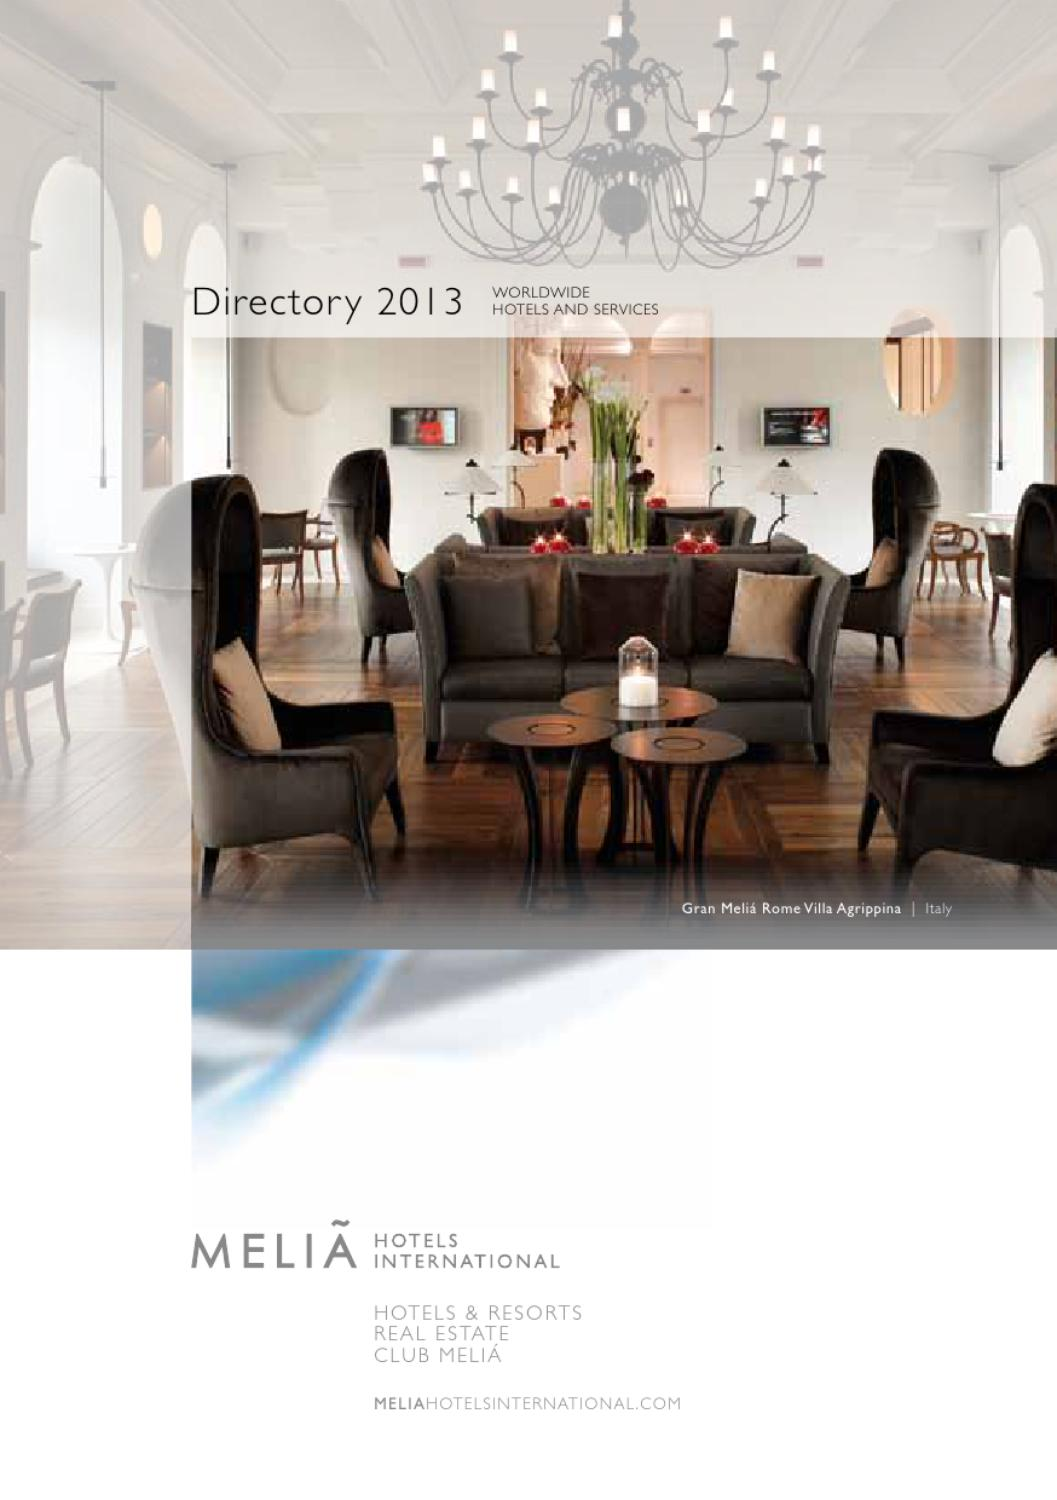 Sofa Cafe Cerqueira Cesar Melia Hotels International Directory 2013 By Melia Hotels